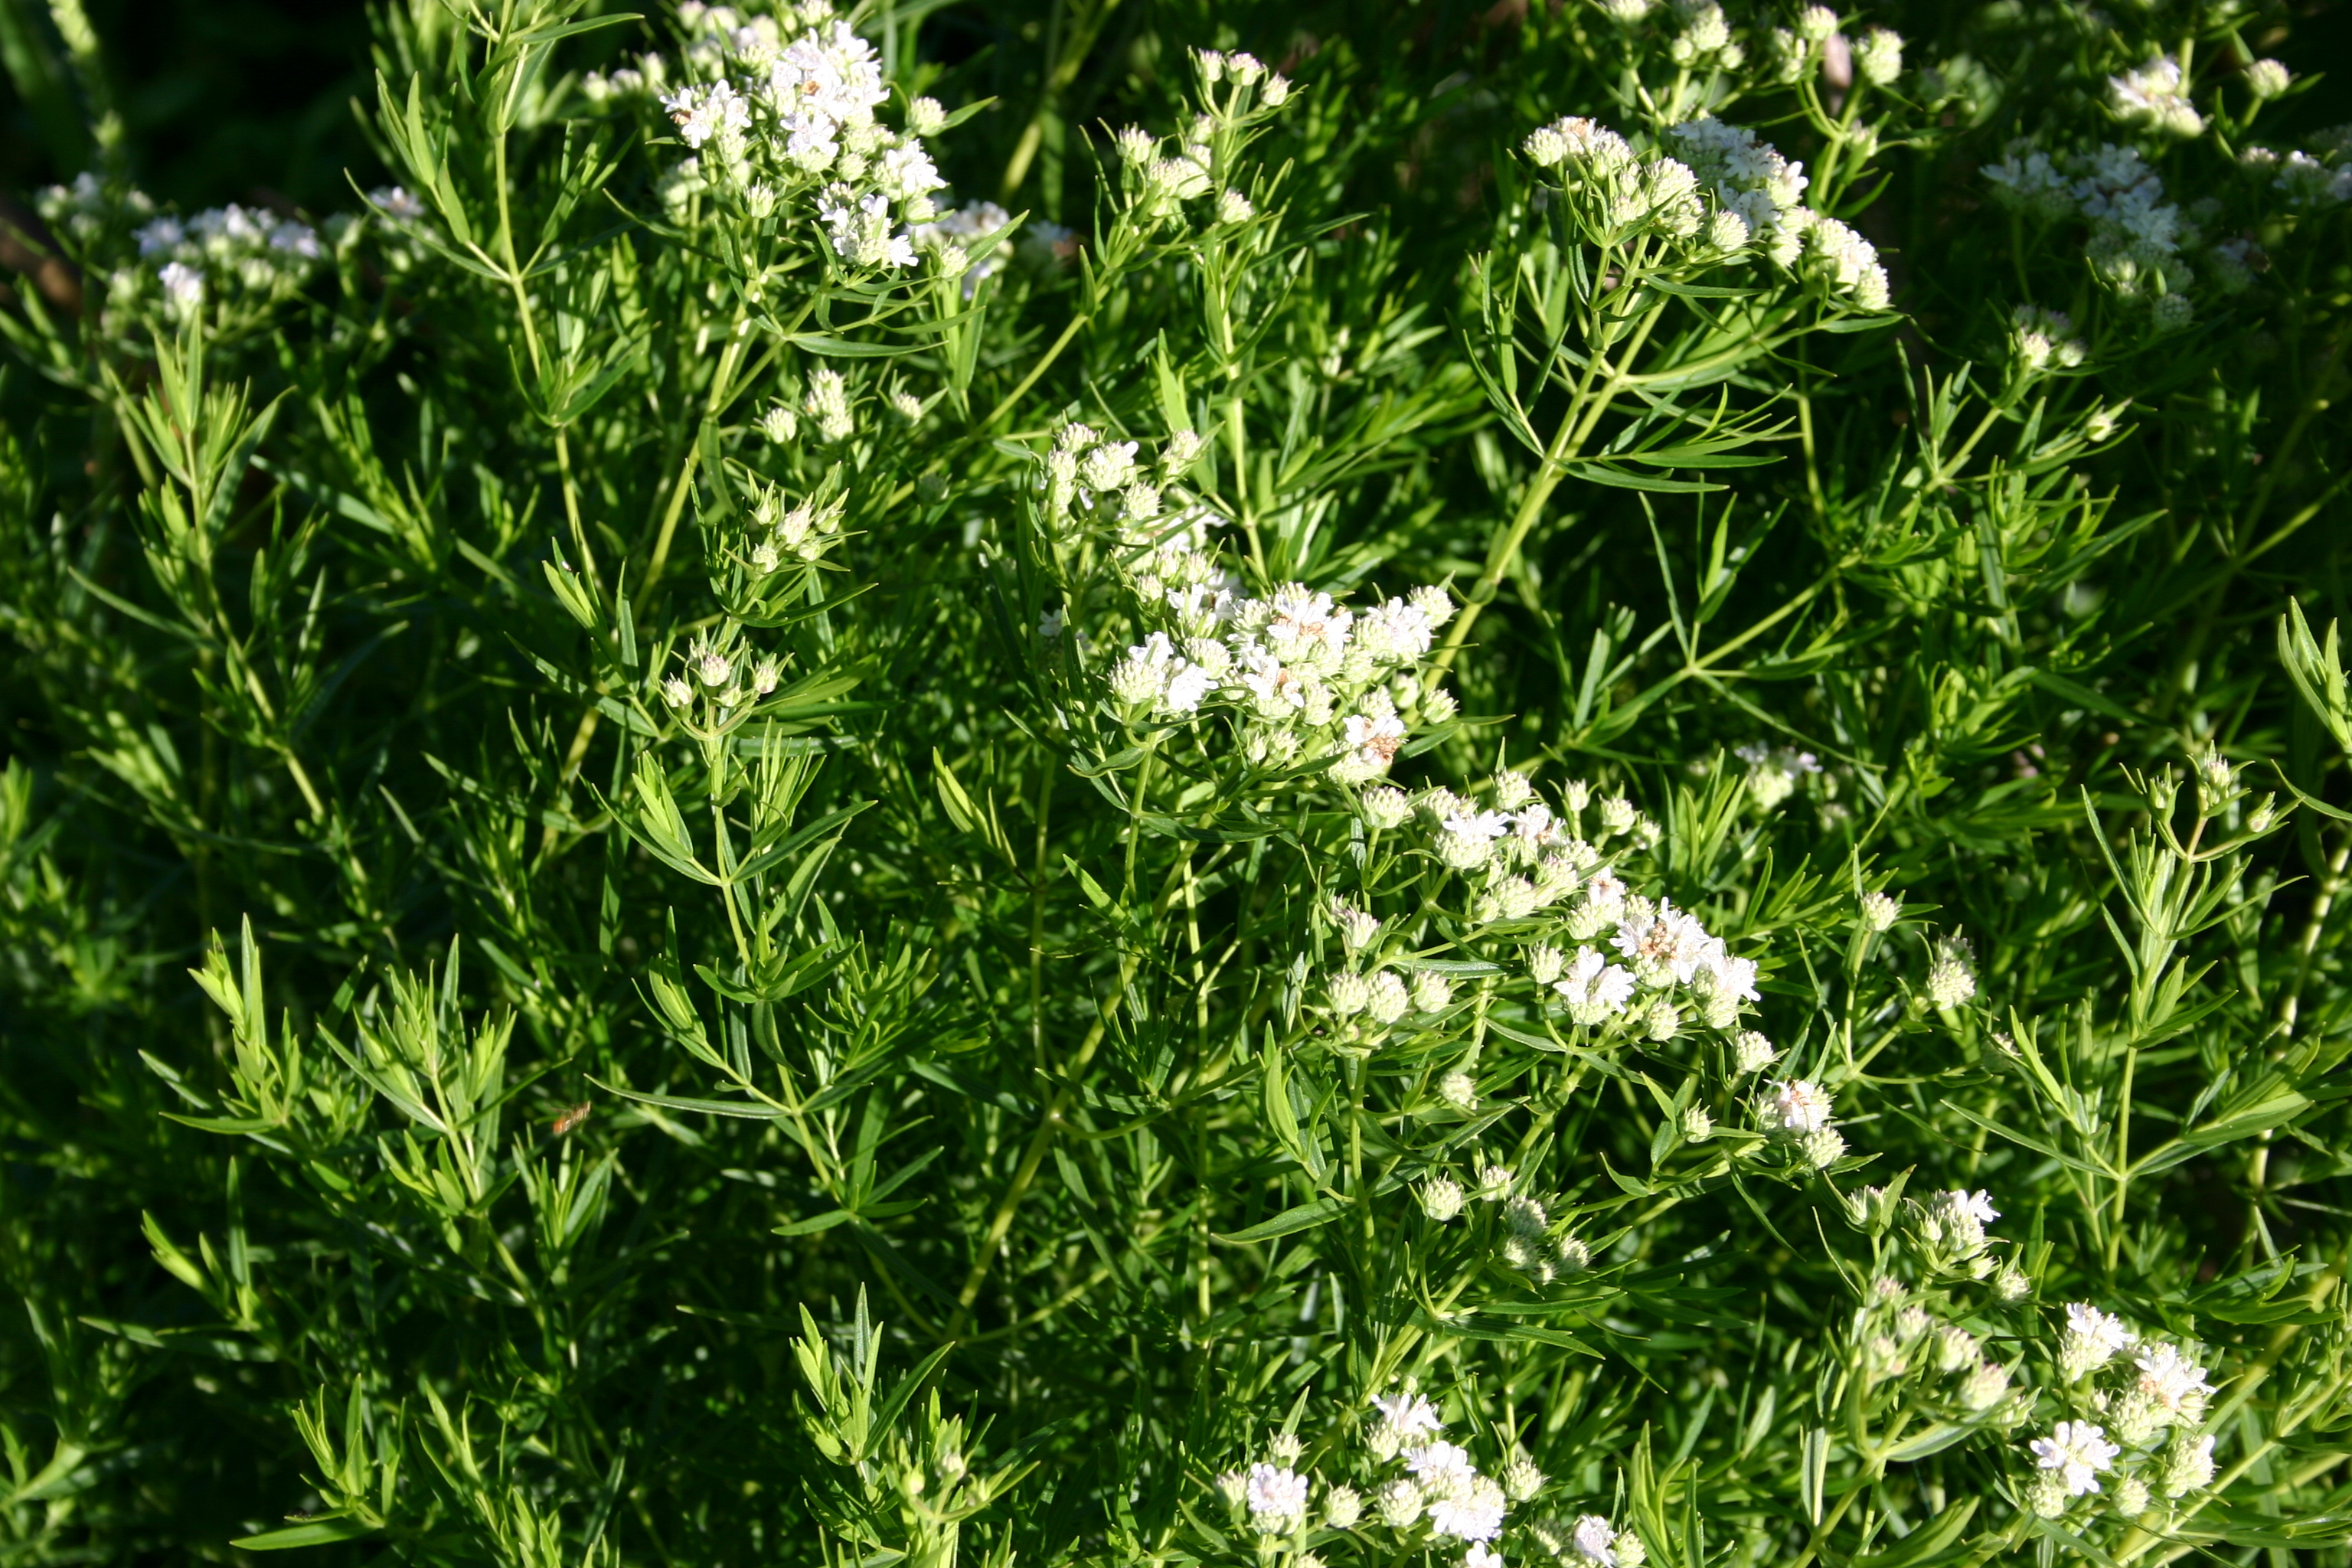 Image of narrowleaf mountainmint